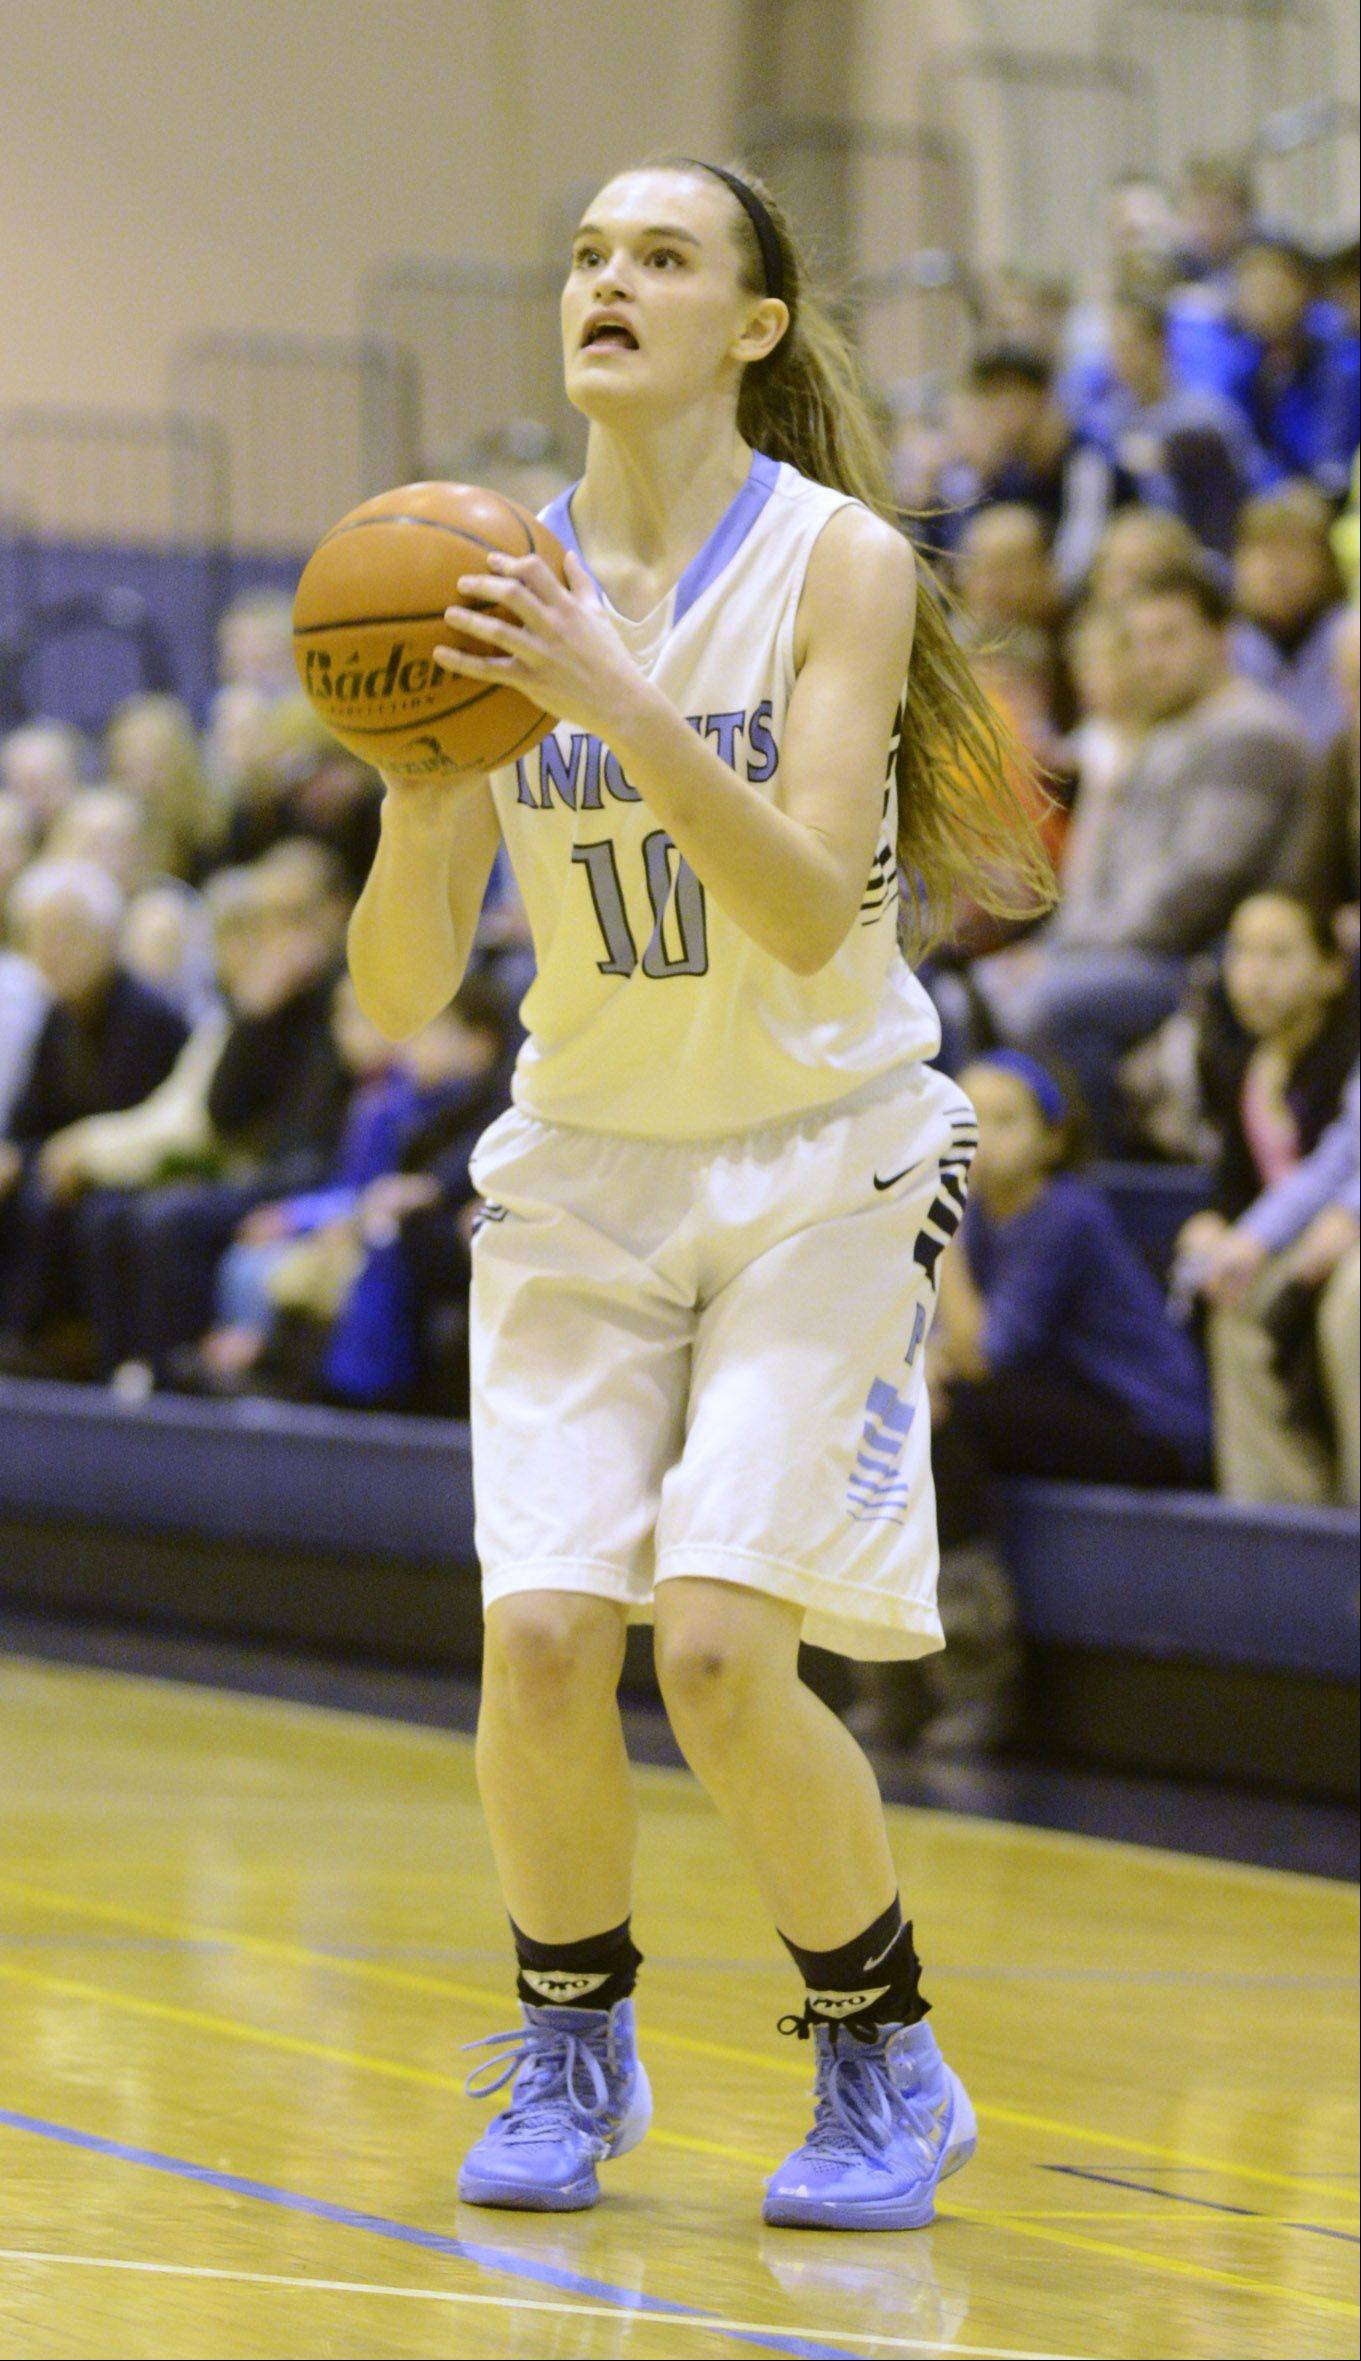 Prospect's Taylor Will surpasses 1,000-career points with a three-pointer during Saturday's game against Rolling Meadows.